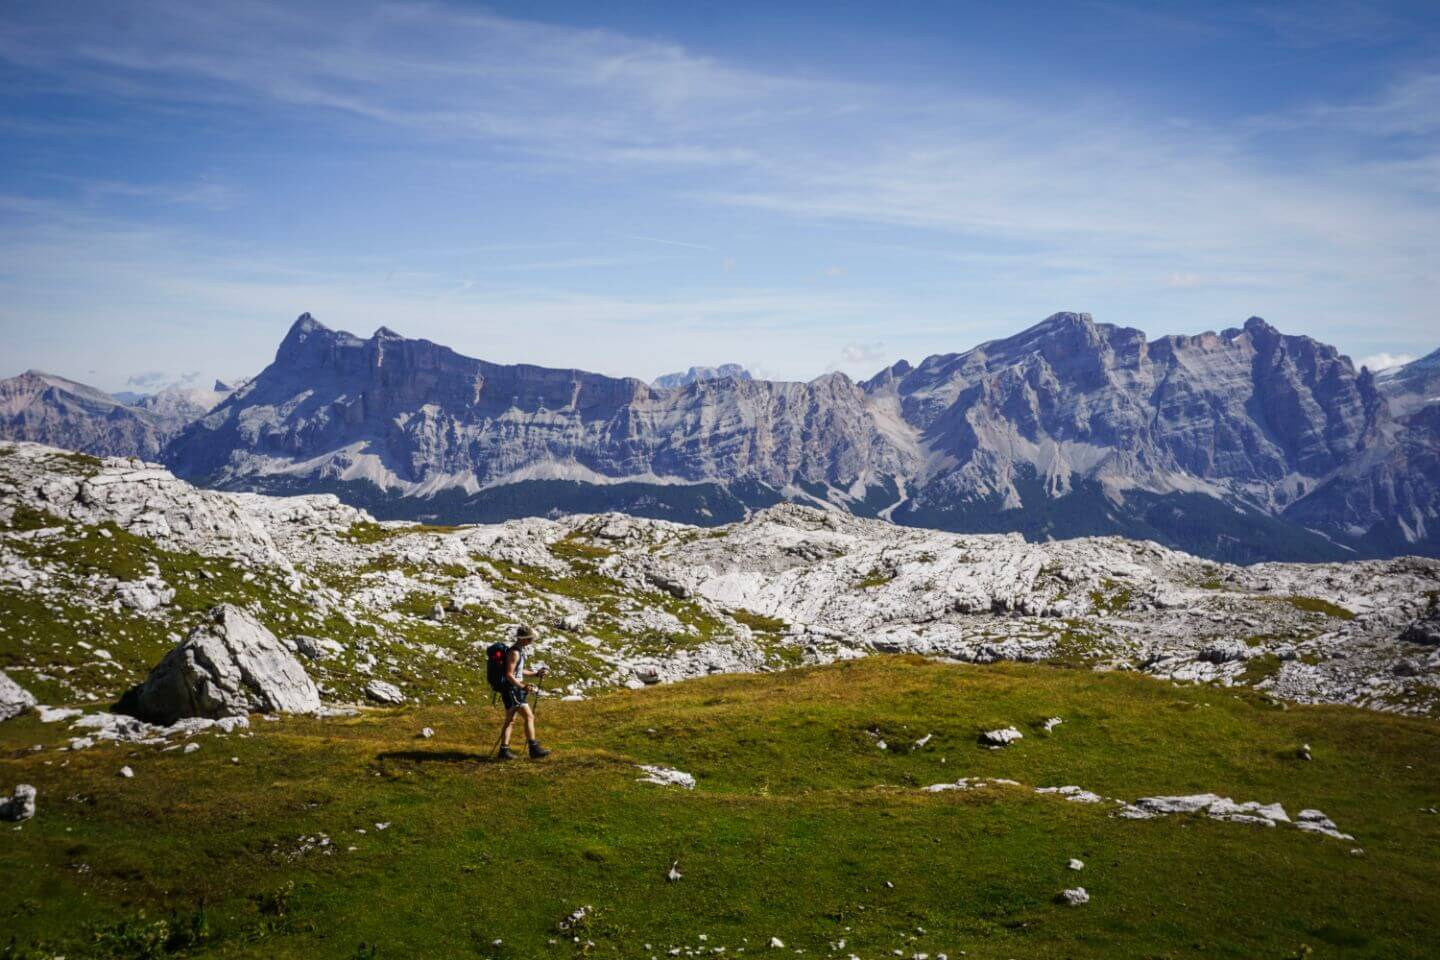 Fanes mountains from Puez-Odle, Dolomites Day Hike